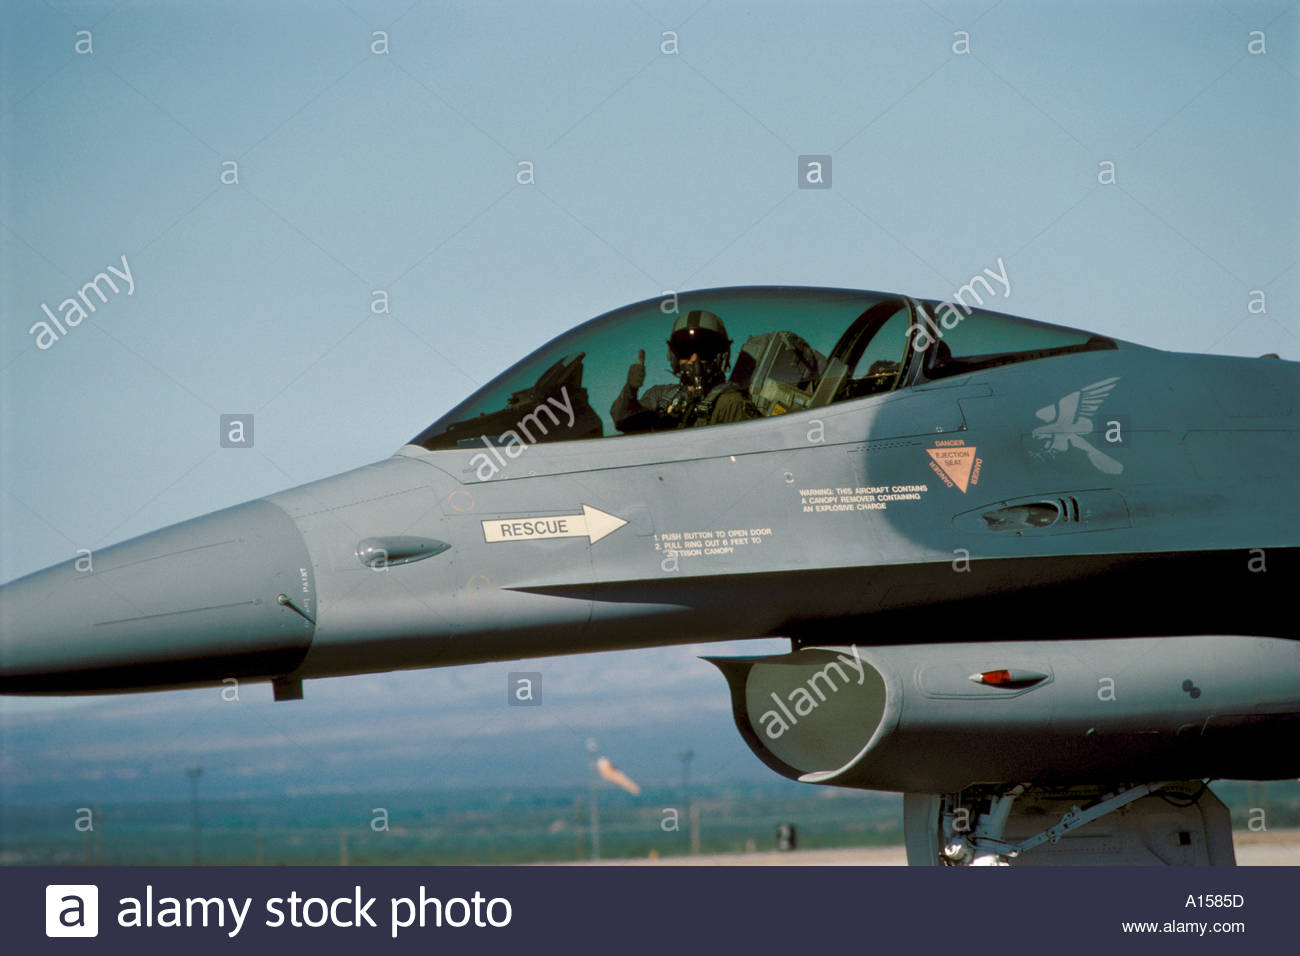 Usaf Air Force Pilot Readies His F 16 Fighting Falcon Jet